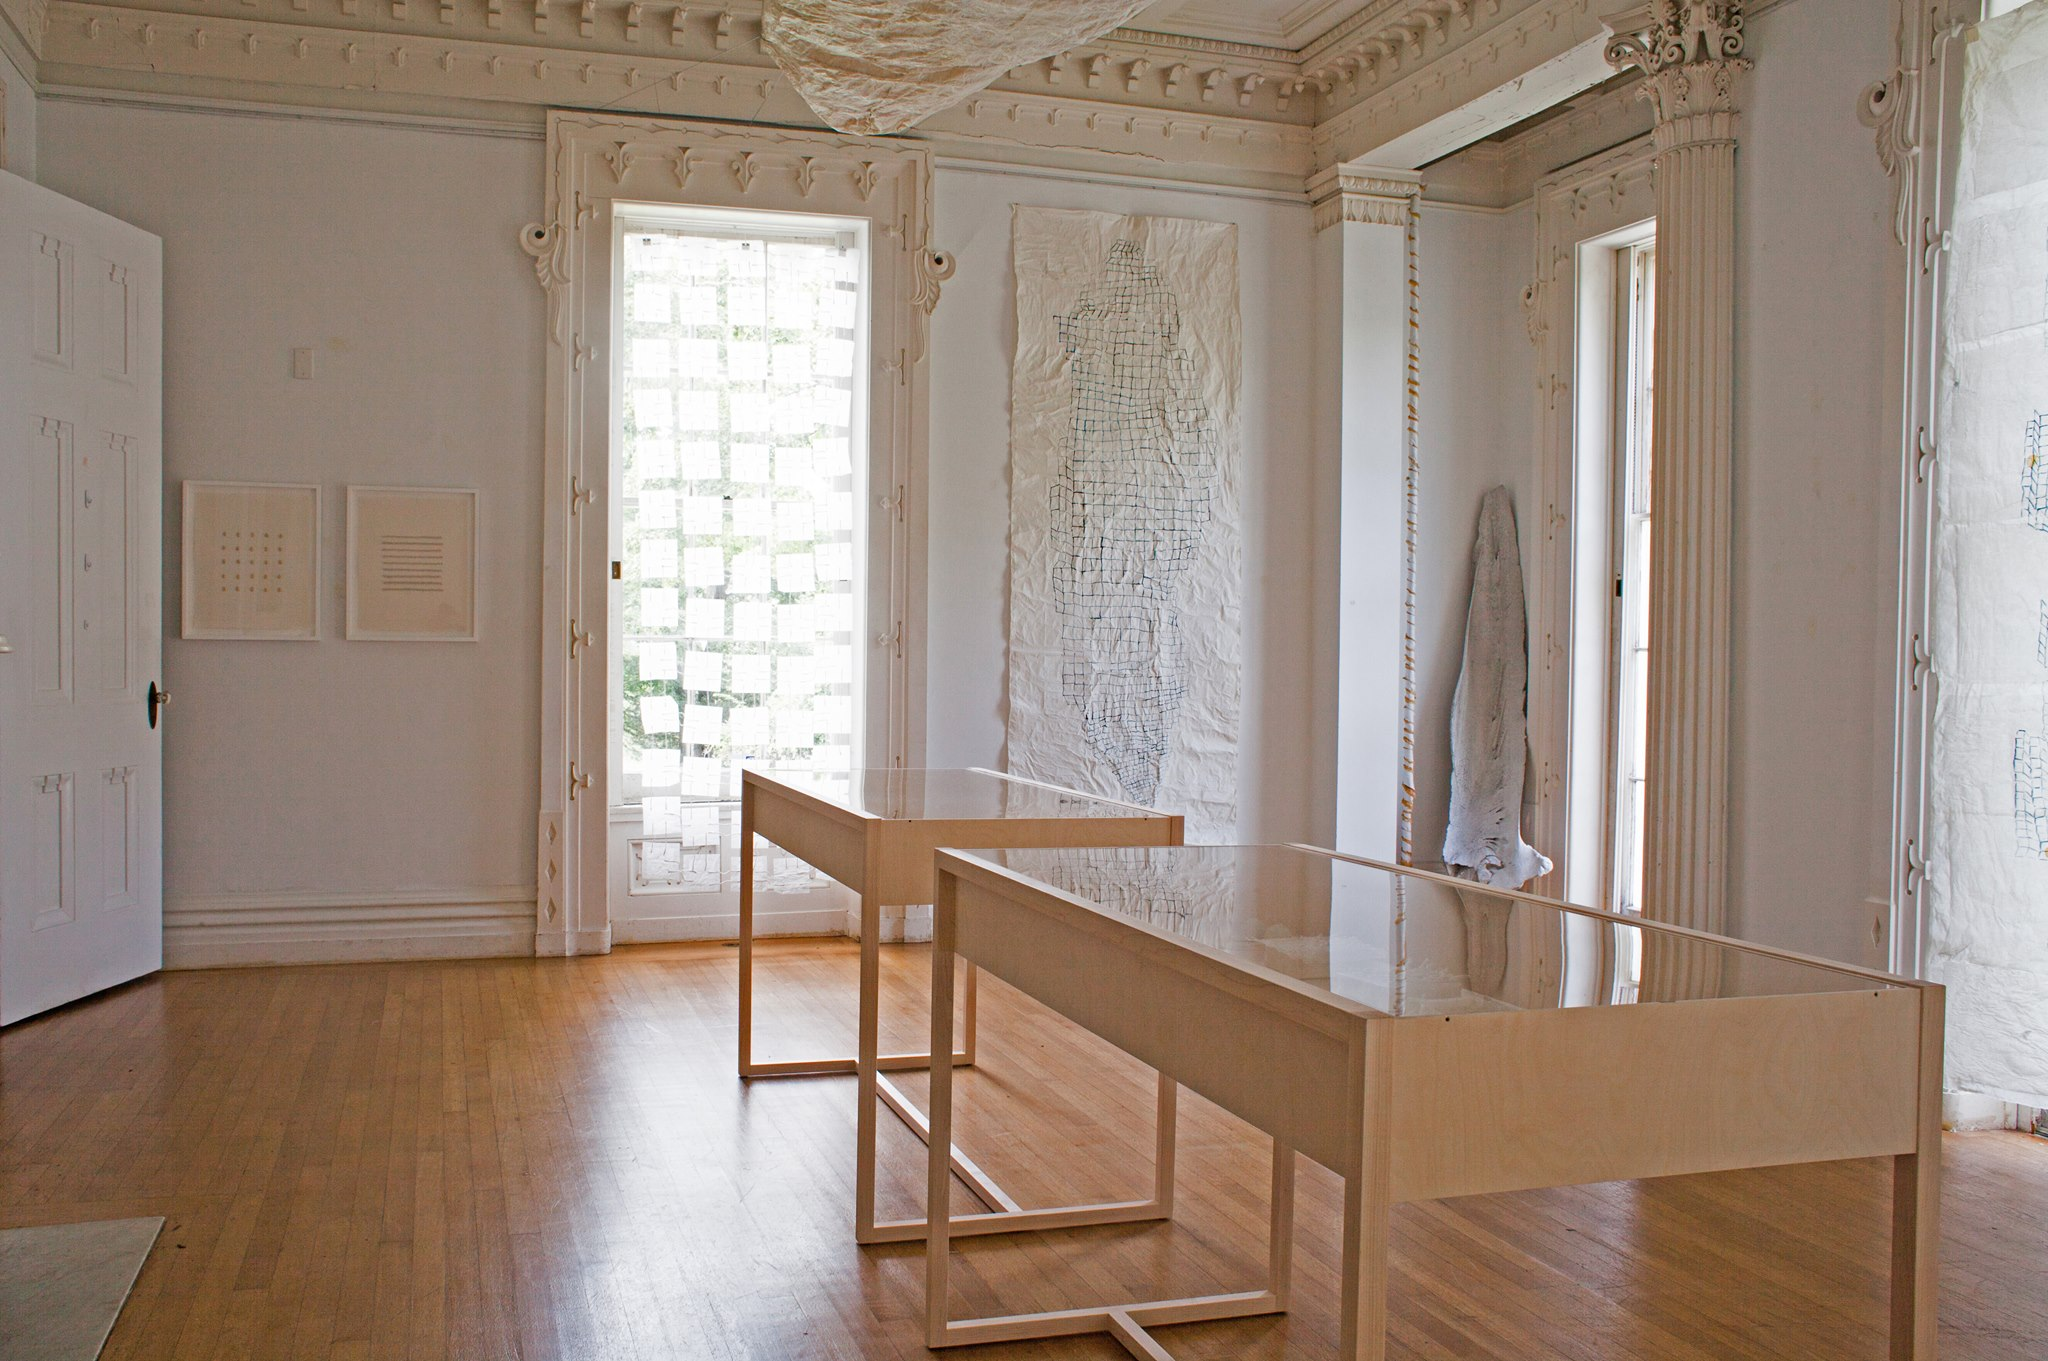 """installation view of """"Archeology of Time"""", courtesy of the artist."""